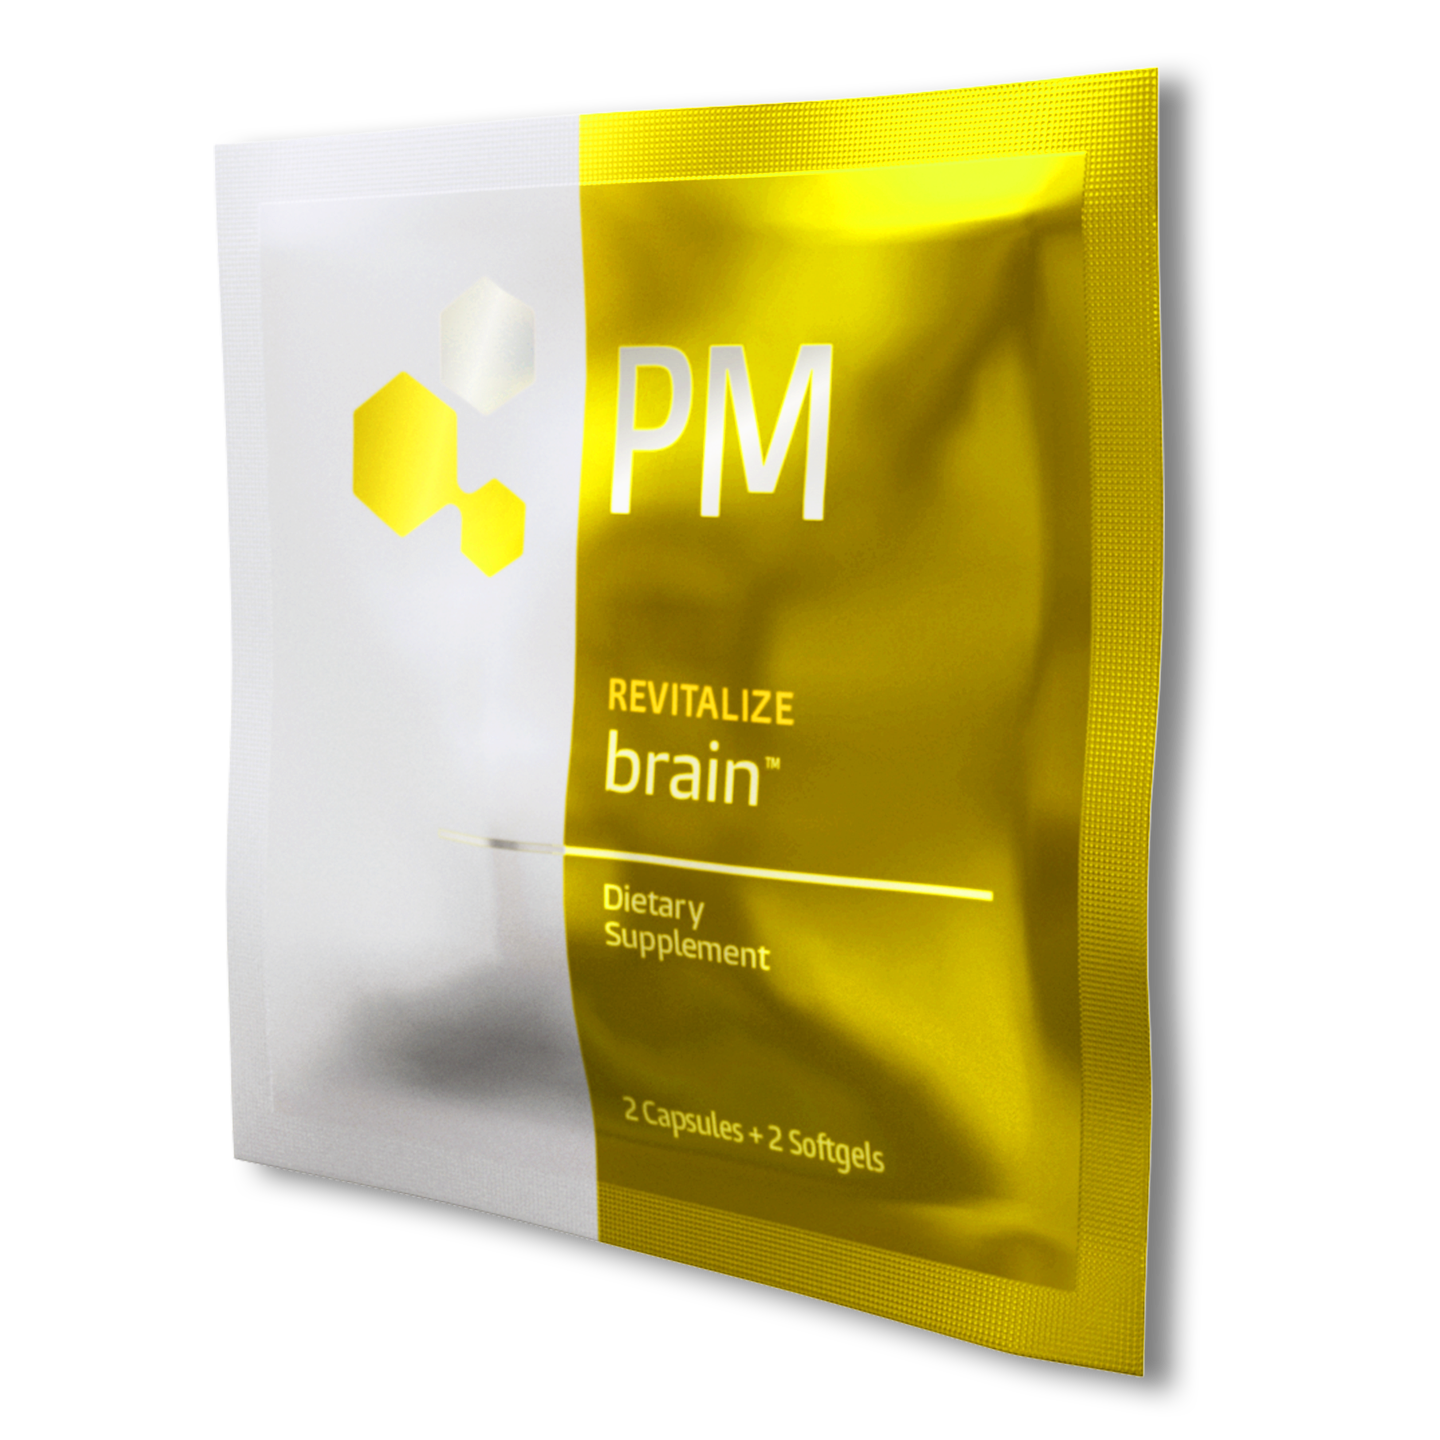 forte brain support supplement pm packet